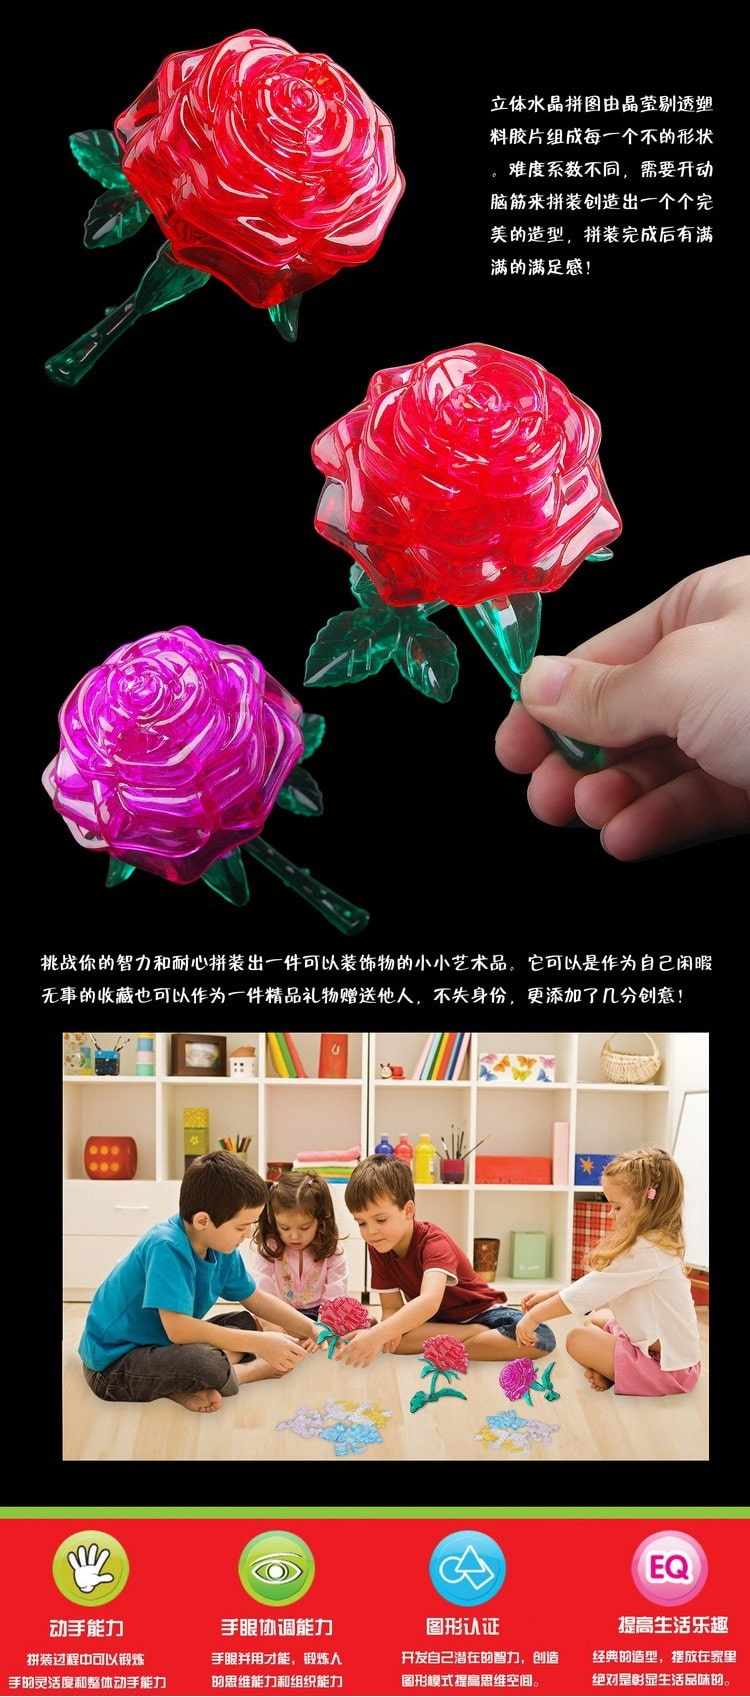 Crystal Puzzle Red Rose - Benefits